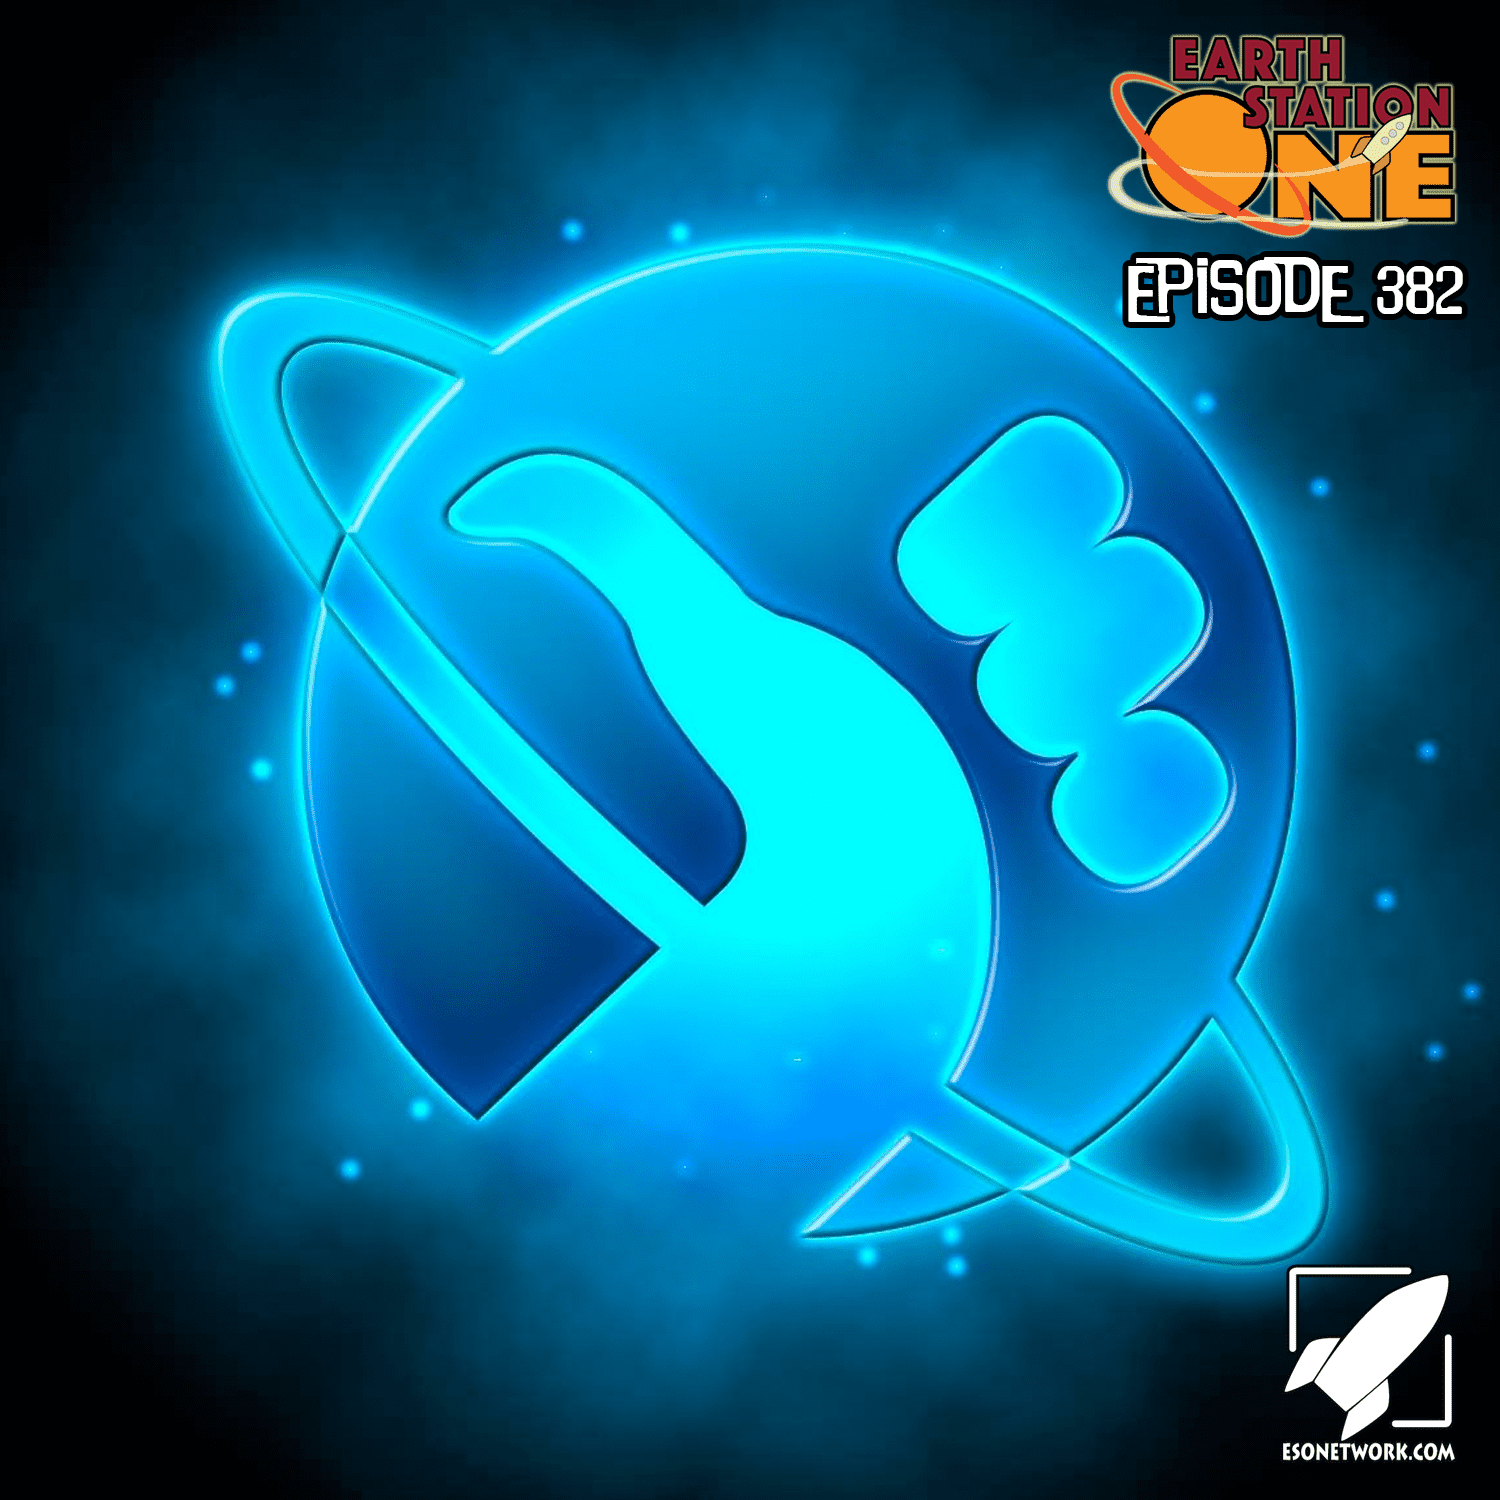 Earth Station One Episode 382